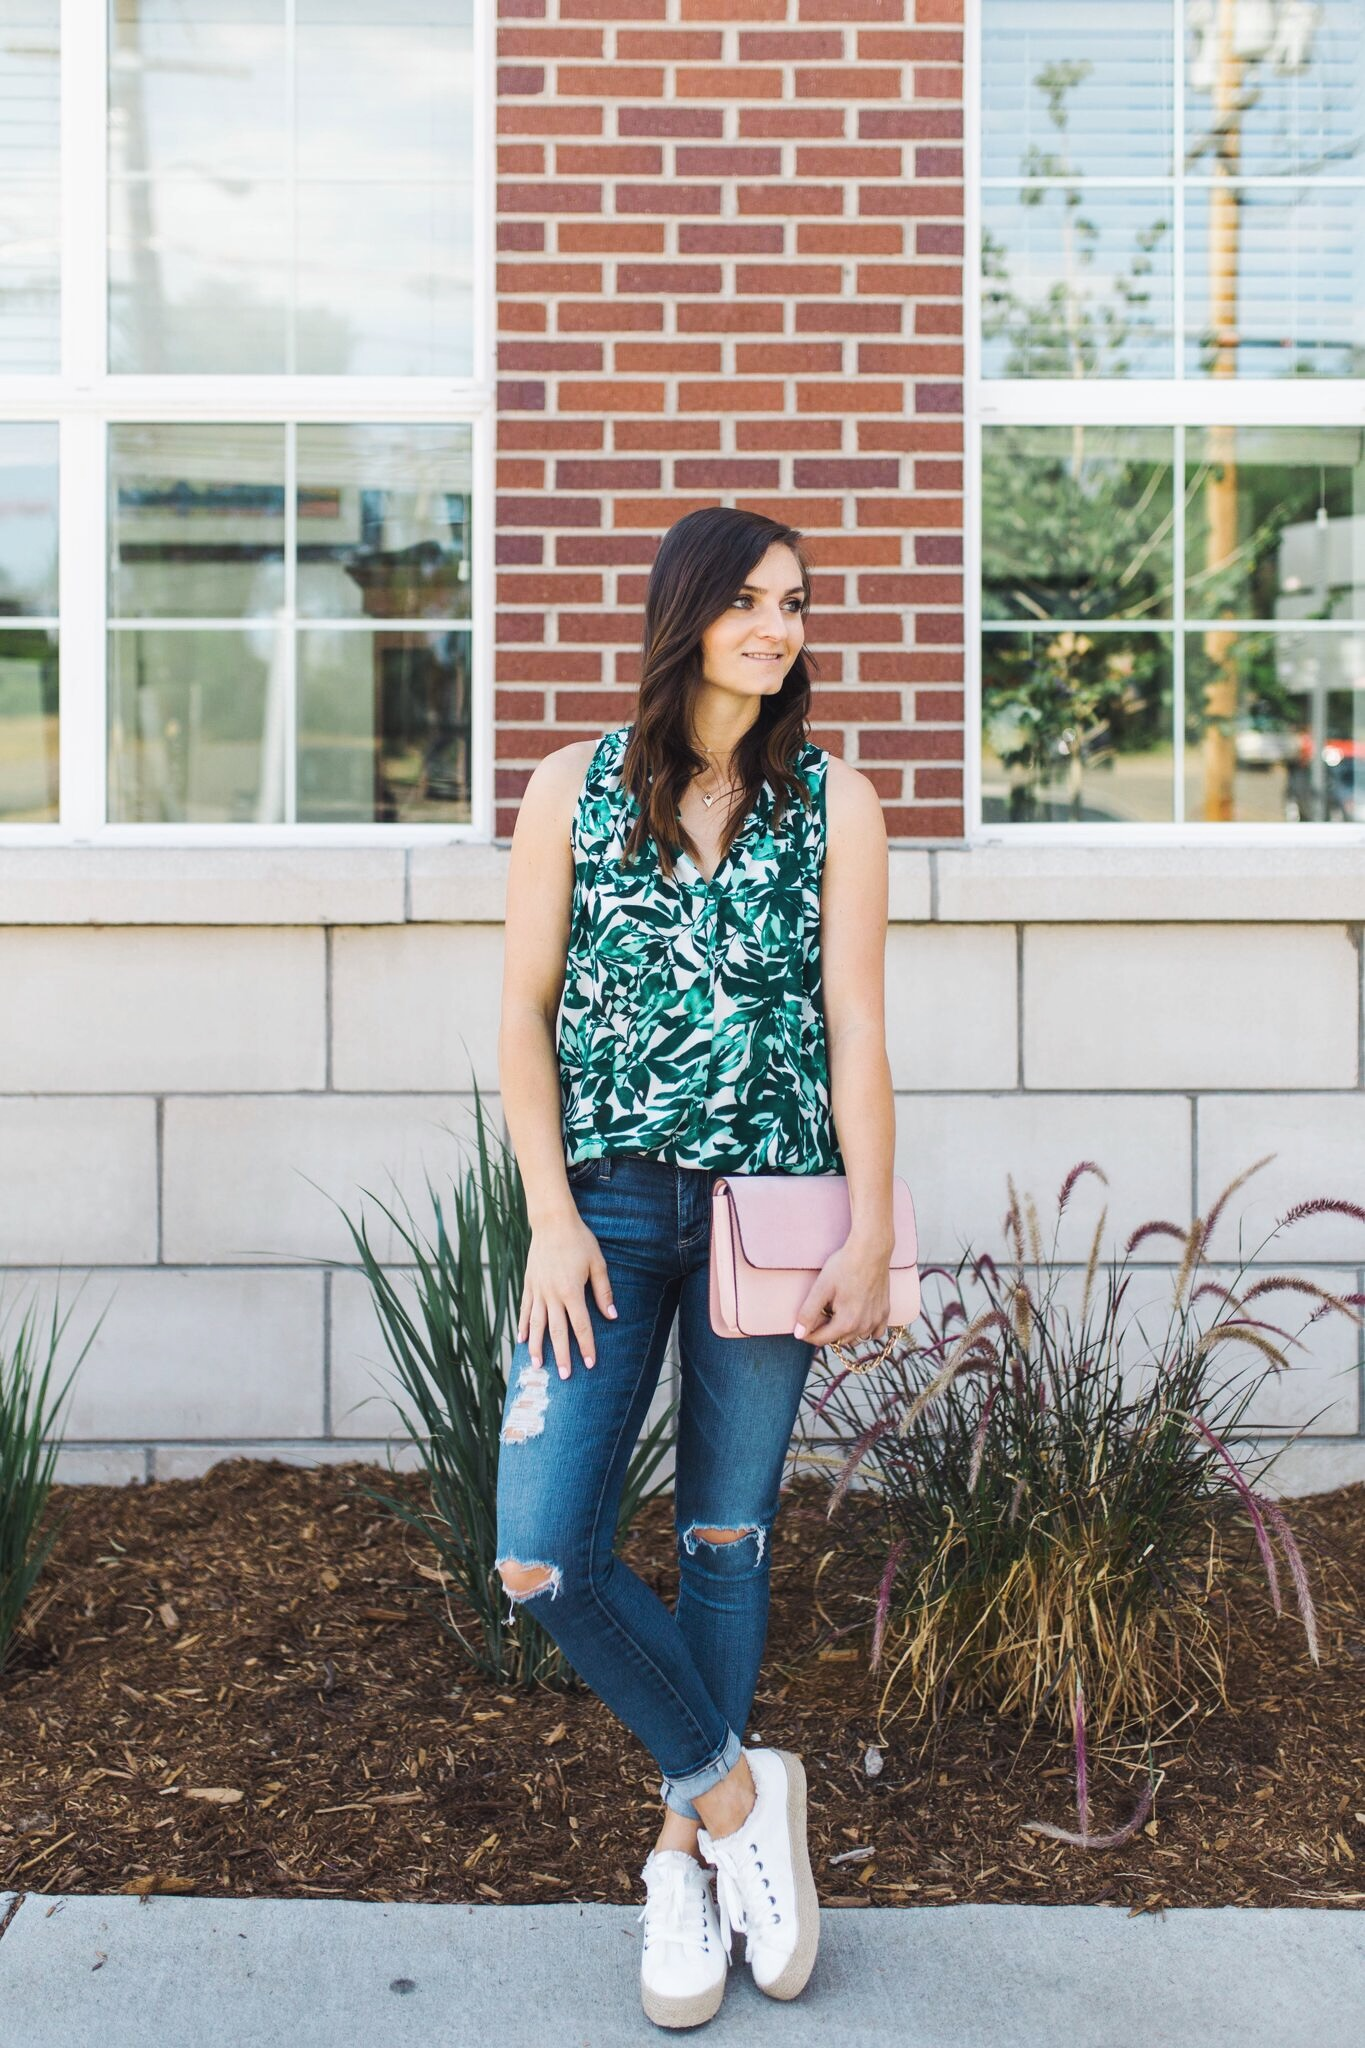 """<img src= five-summer-pieces-to-have-in-your-closet.jpg"""" alt= """"denver-fashion-blogger-wearing-summer-essential-pieces-to-have-in-your-closet-bold-patterned-tank-top-blouse-white-espadrille-platform-sneakers-ag-adriano-goldschmied-11-year-swapmeet-distressed-skinny-jeans-light-pink-chloe-faye-dupe-bag"""">"""